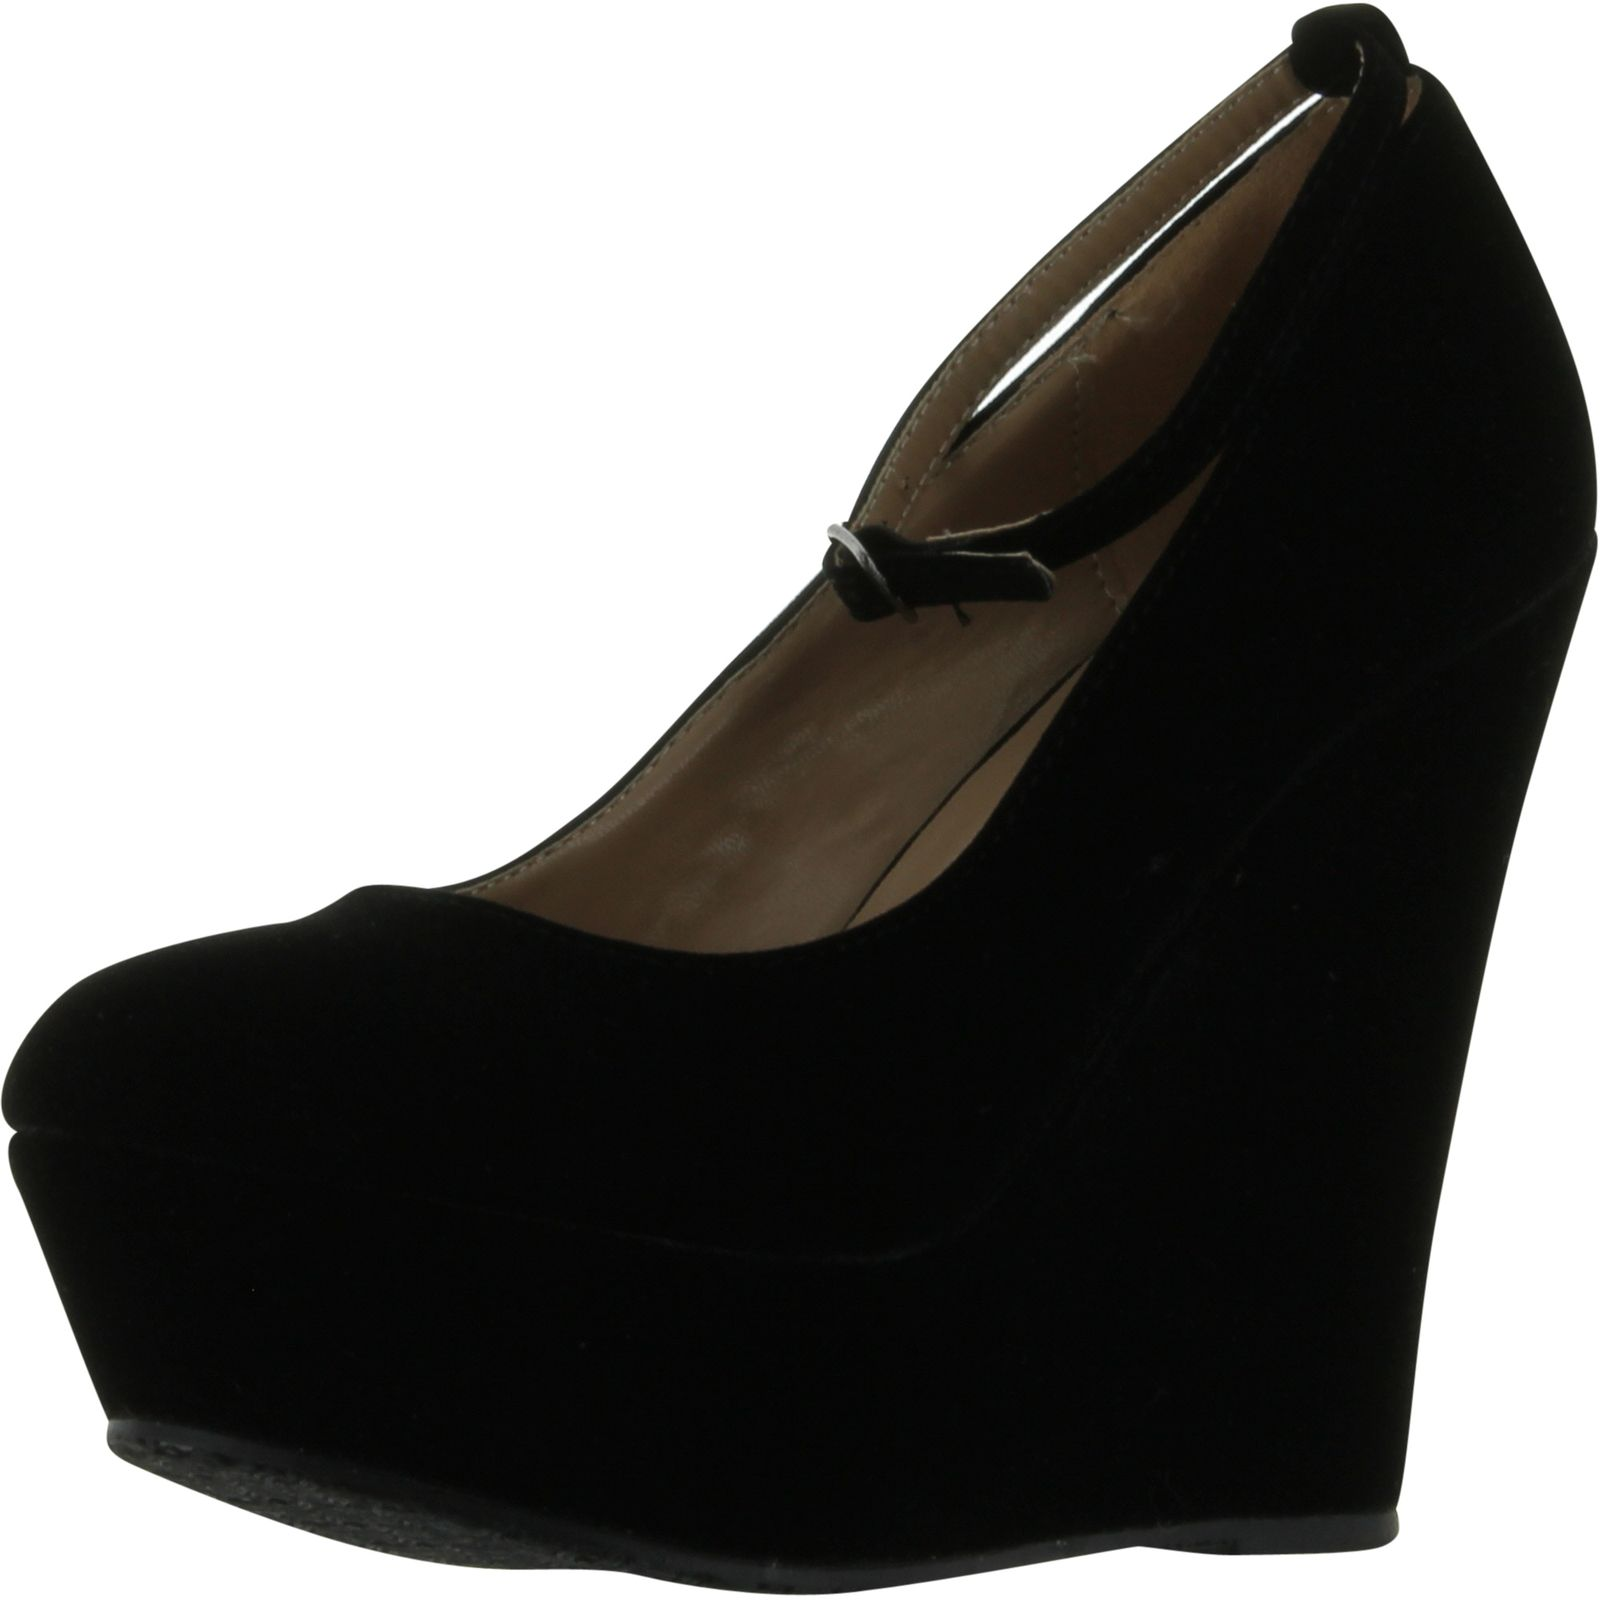 black faux suede toe ankle cover platform